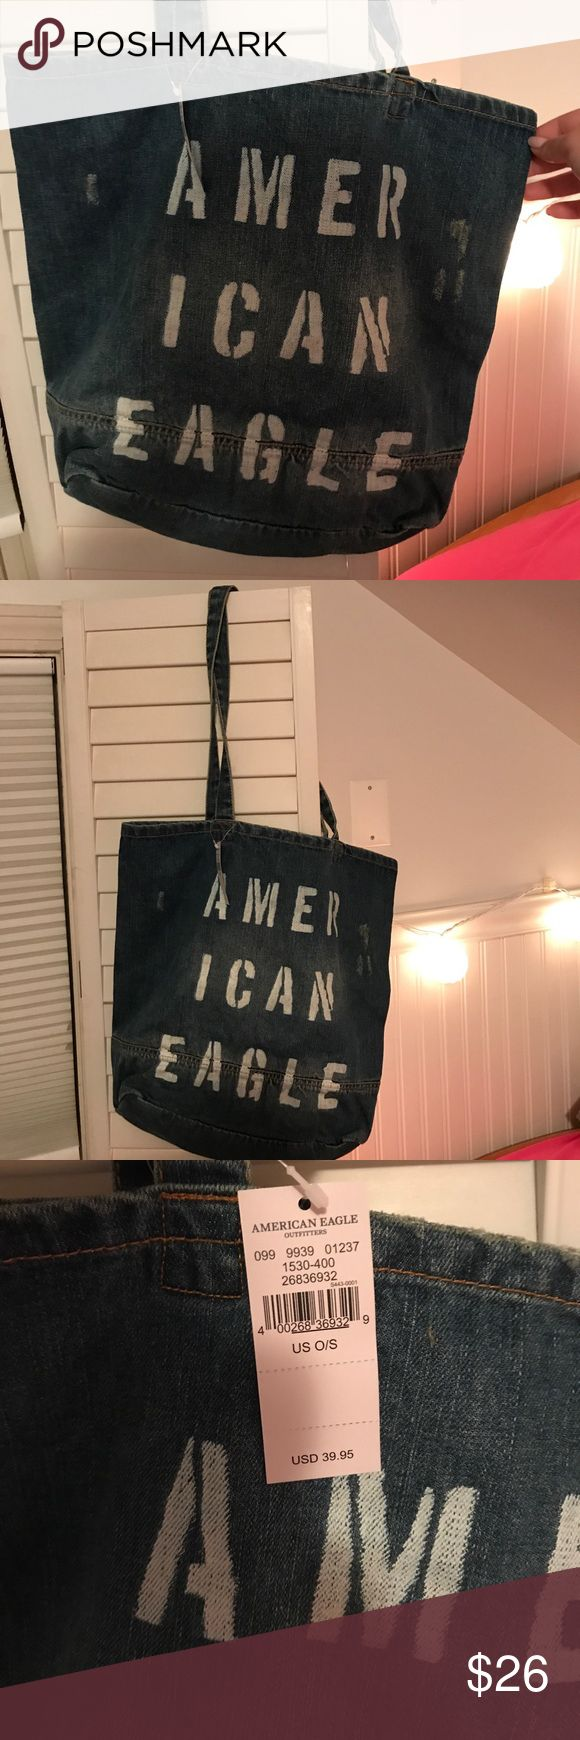 American Eagle Tote Bag American eagle tote bag made out of recycled jeans. Says American eagle on the front American Eagle Outfitters Bags Totes